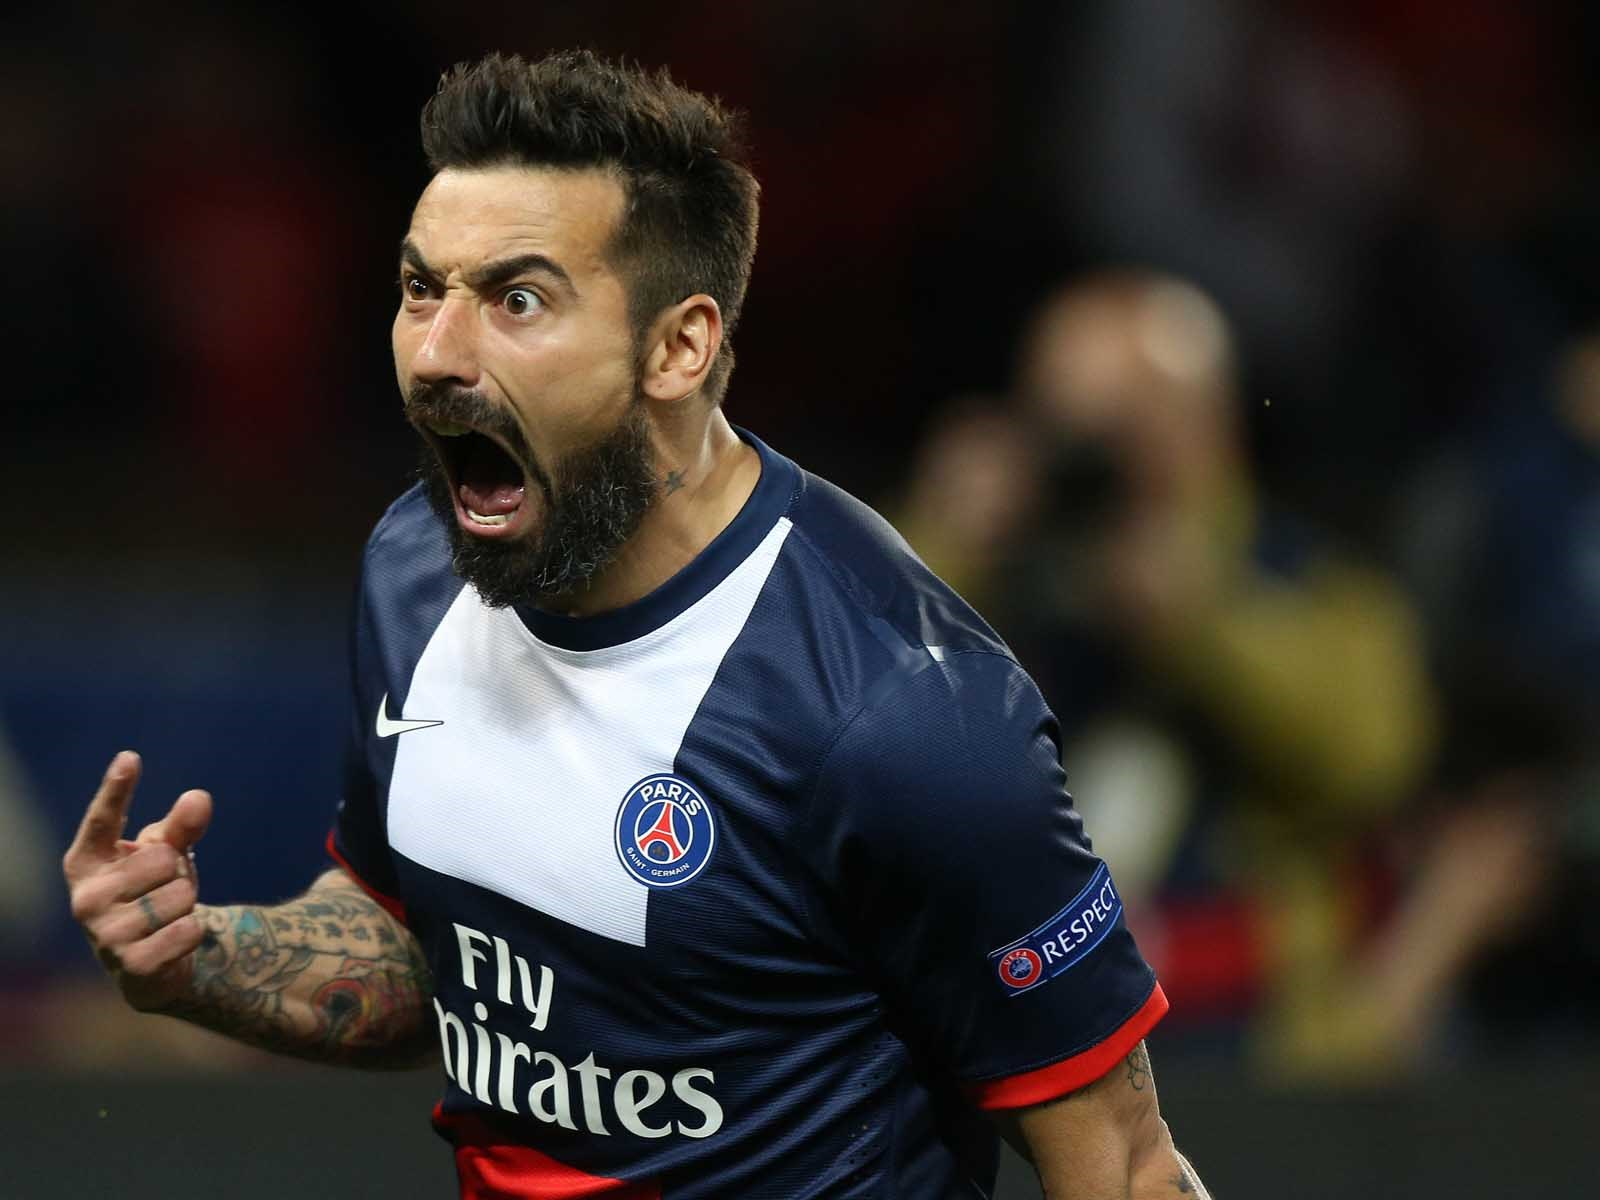 Ezequiel Lavezzi wants to go to Barca